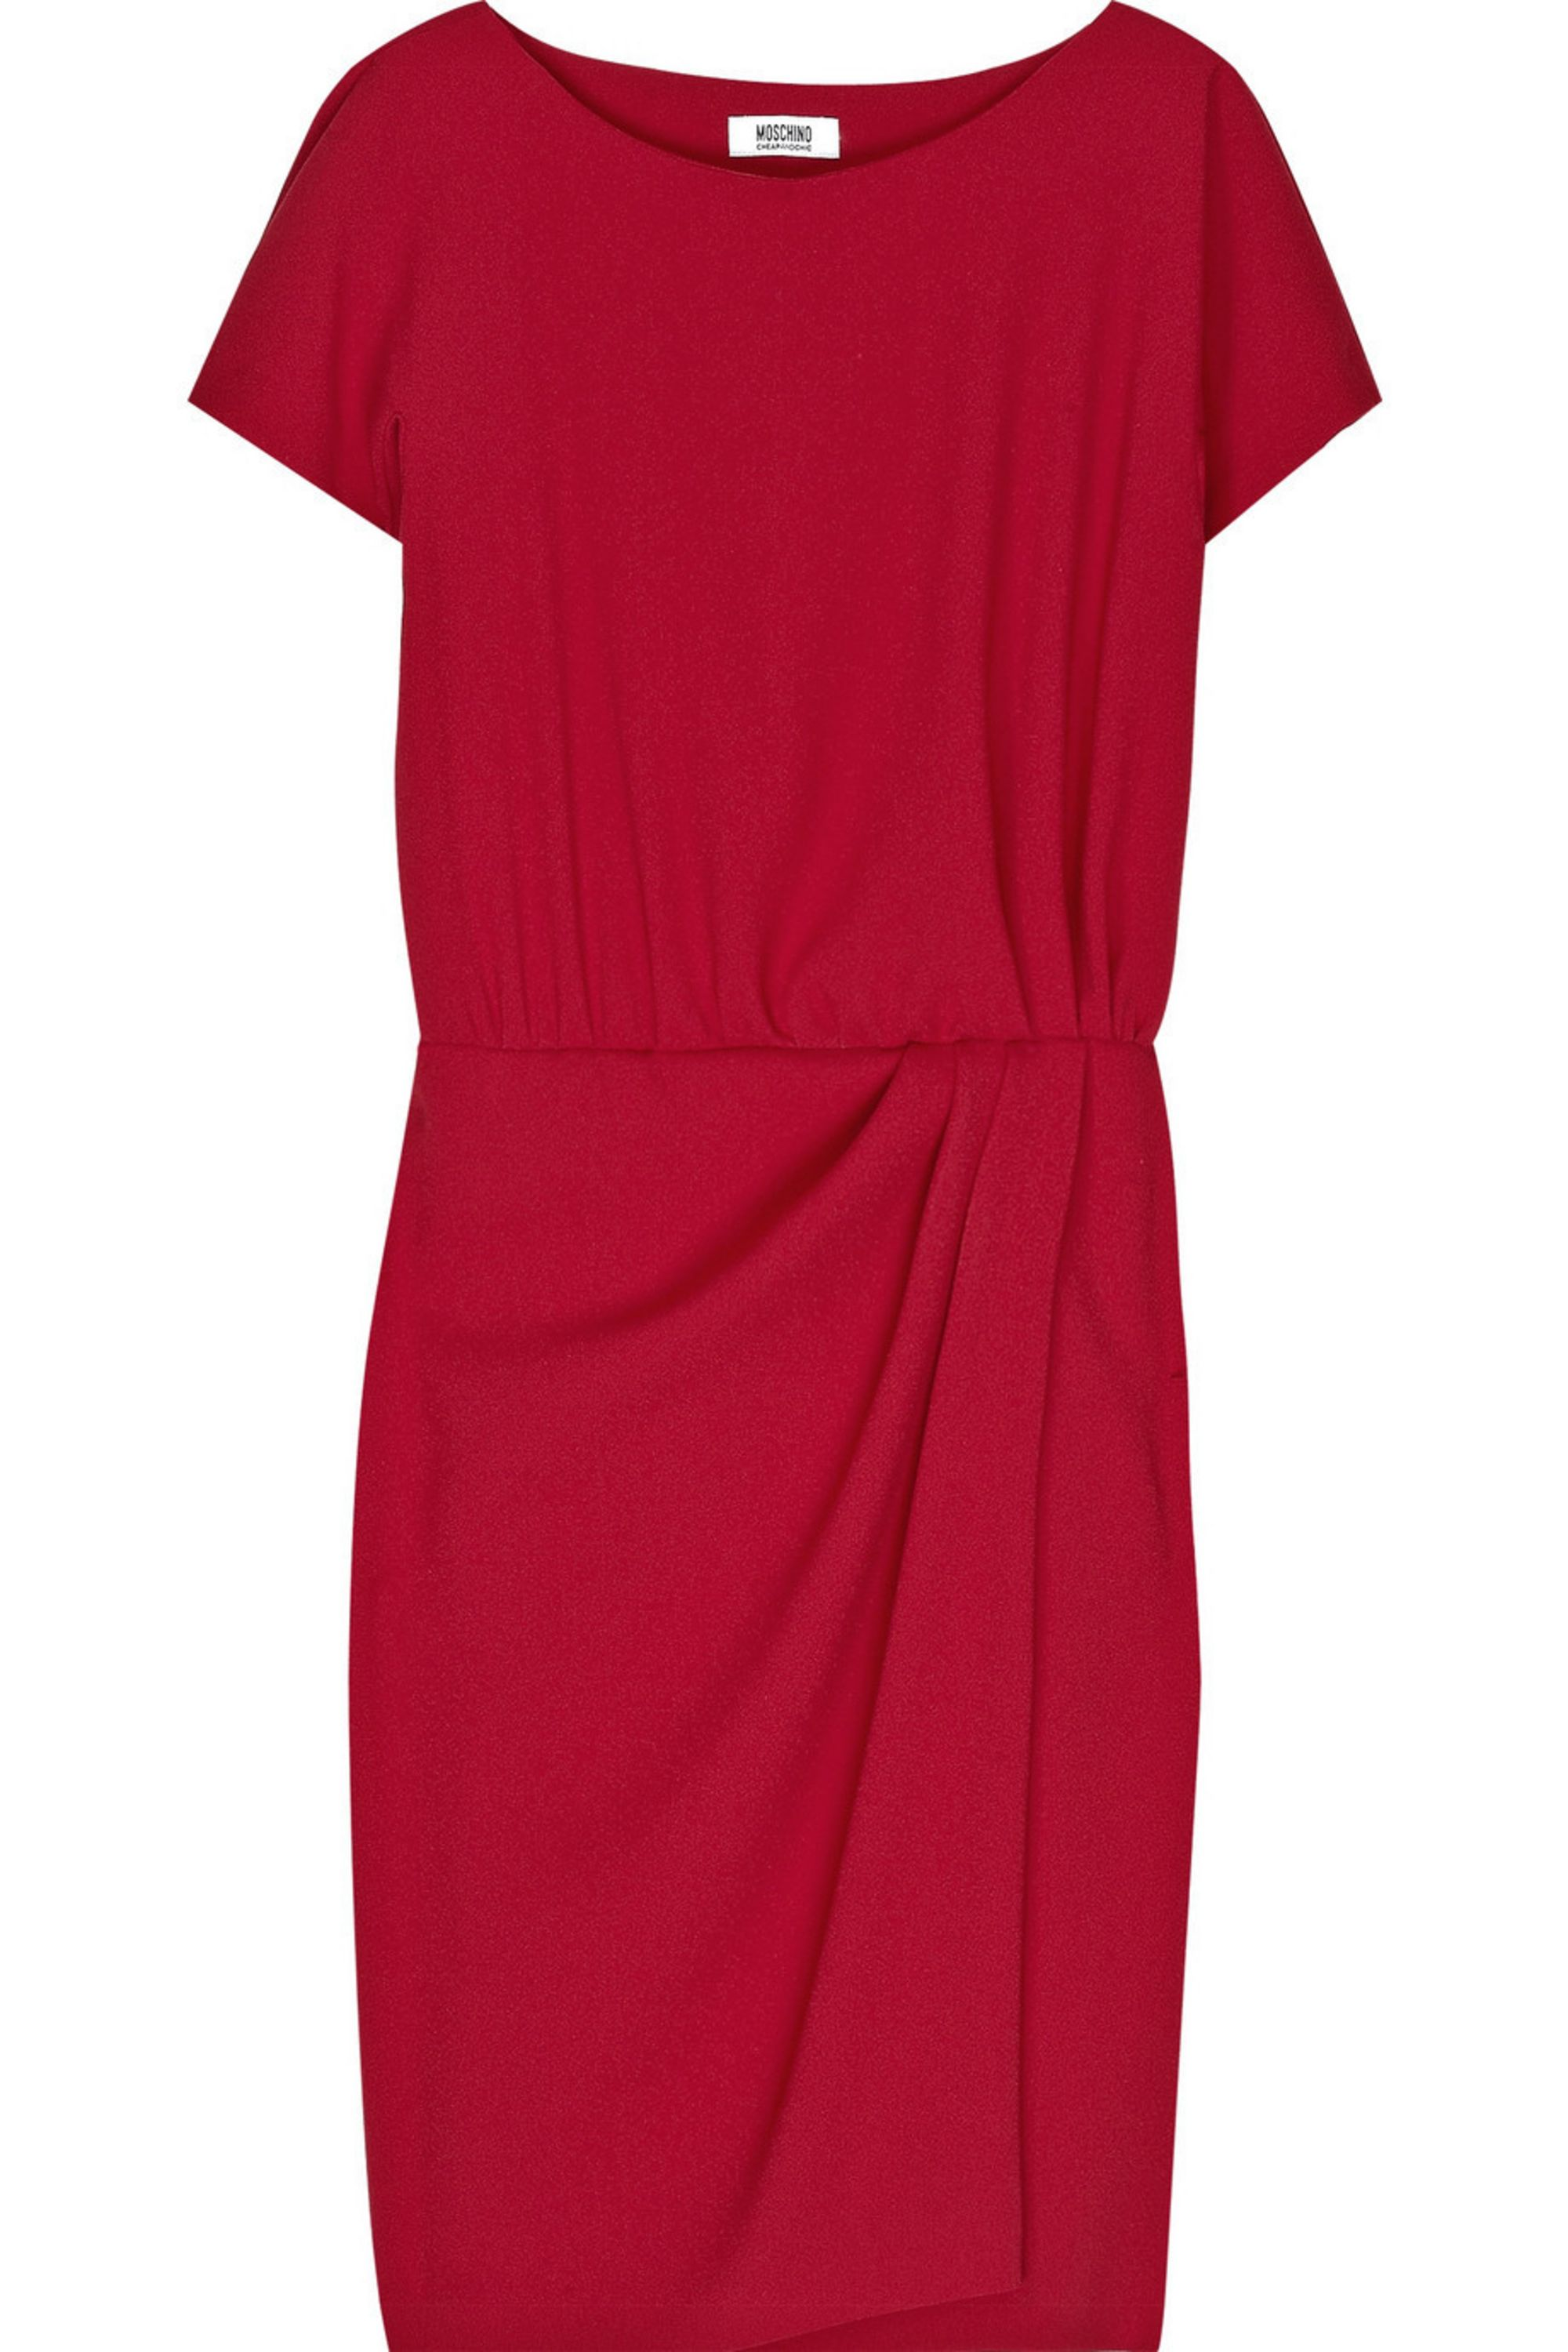 Tomato Red Pleat Front Crepe Dress Boutique Moschino Net A Porter